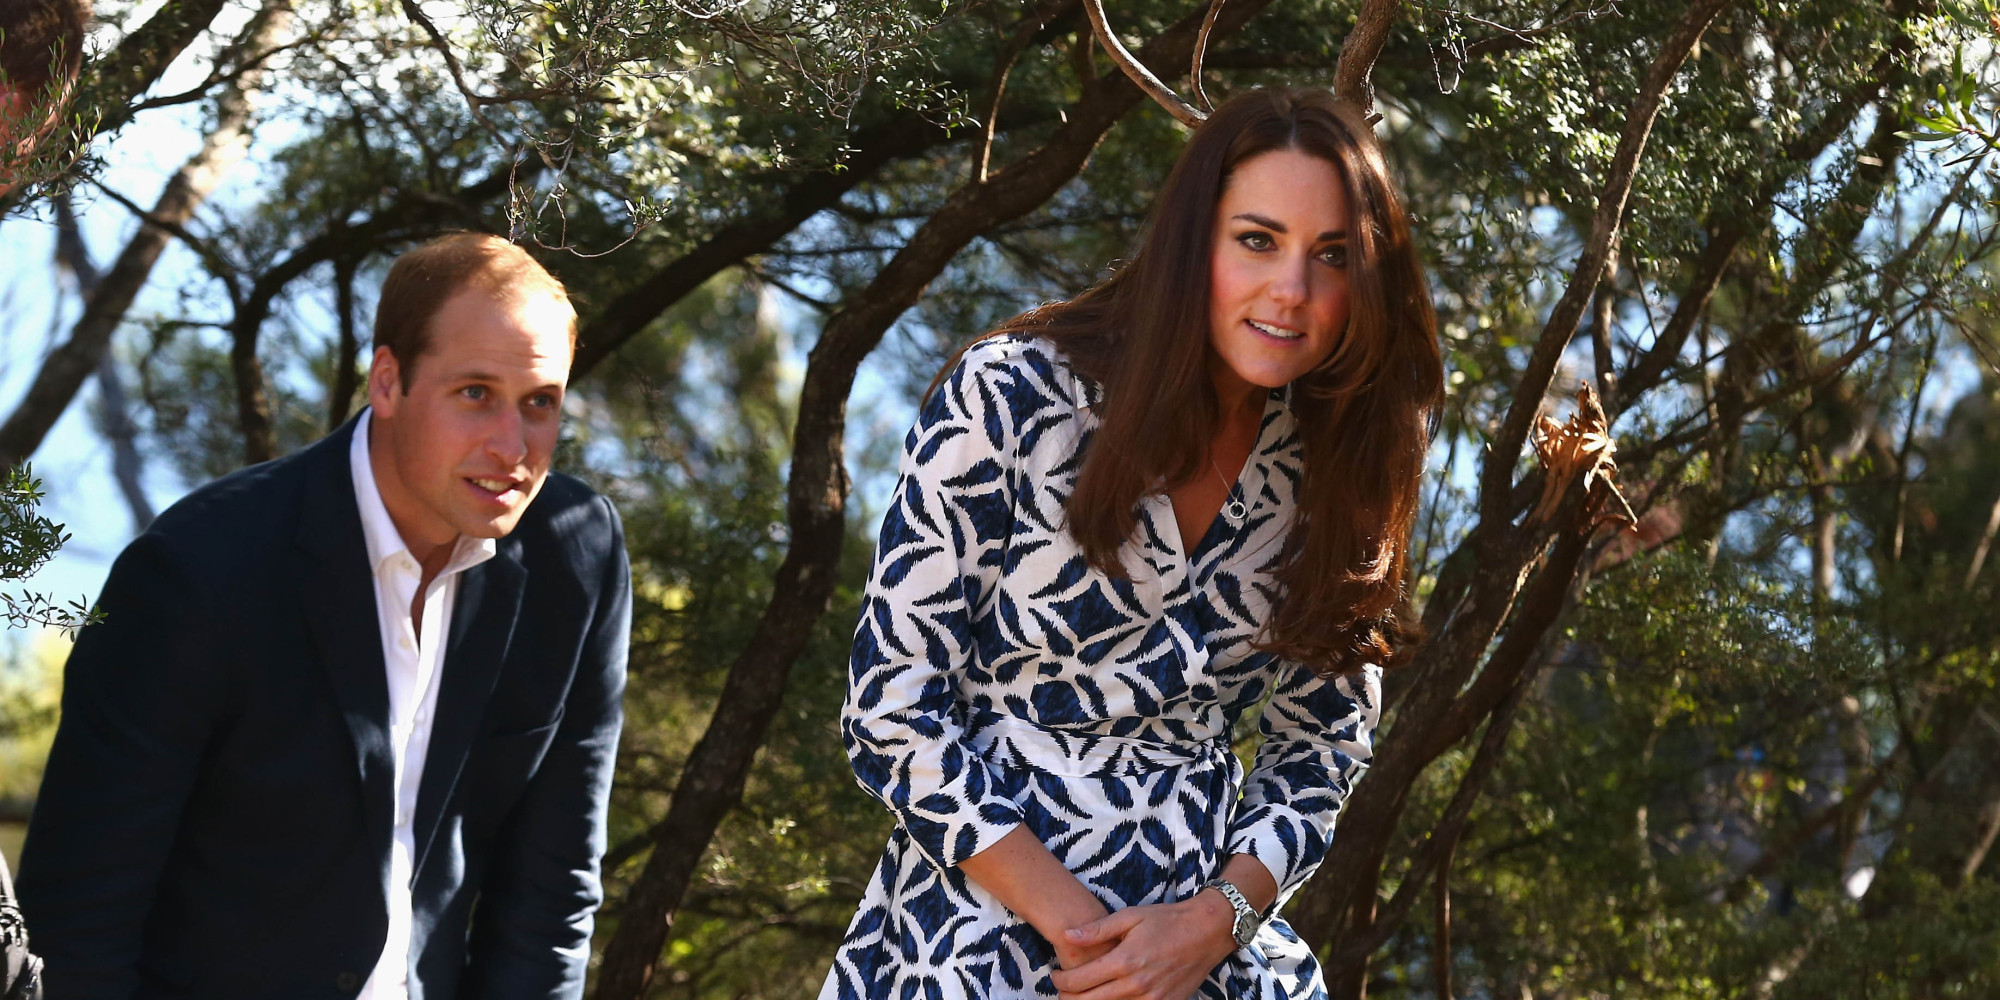 kate middleton's butt exposed in wardrobe malfunction, paper